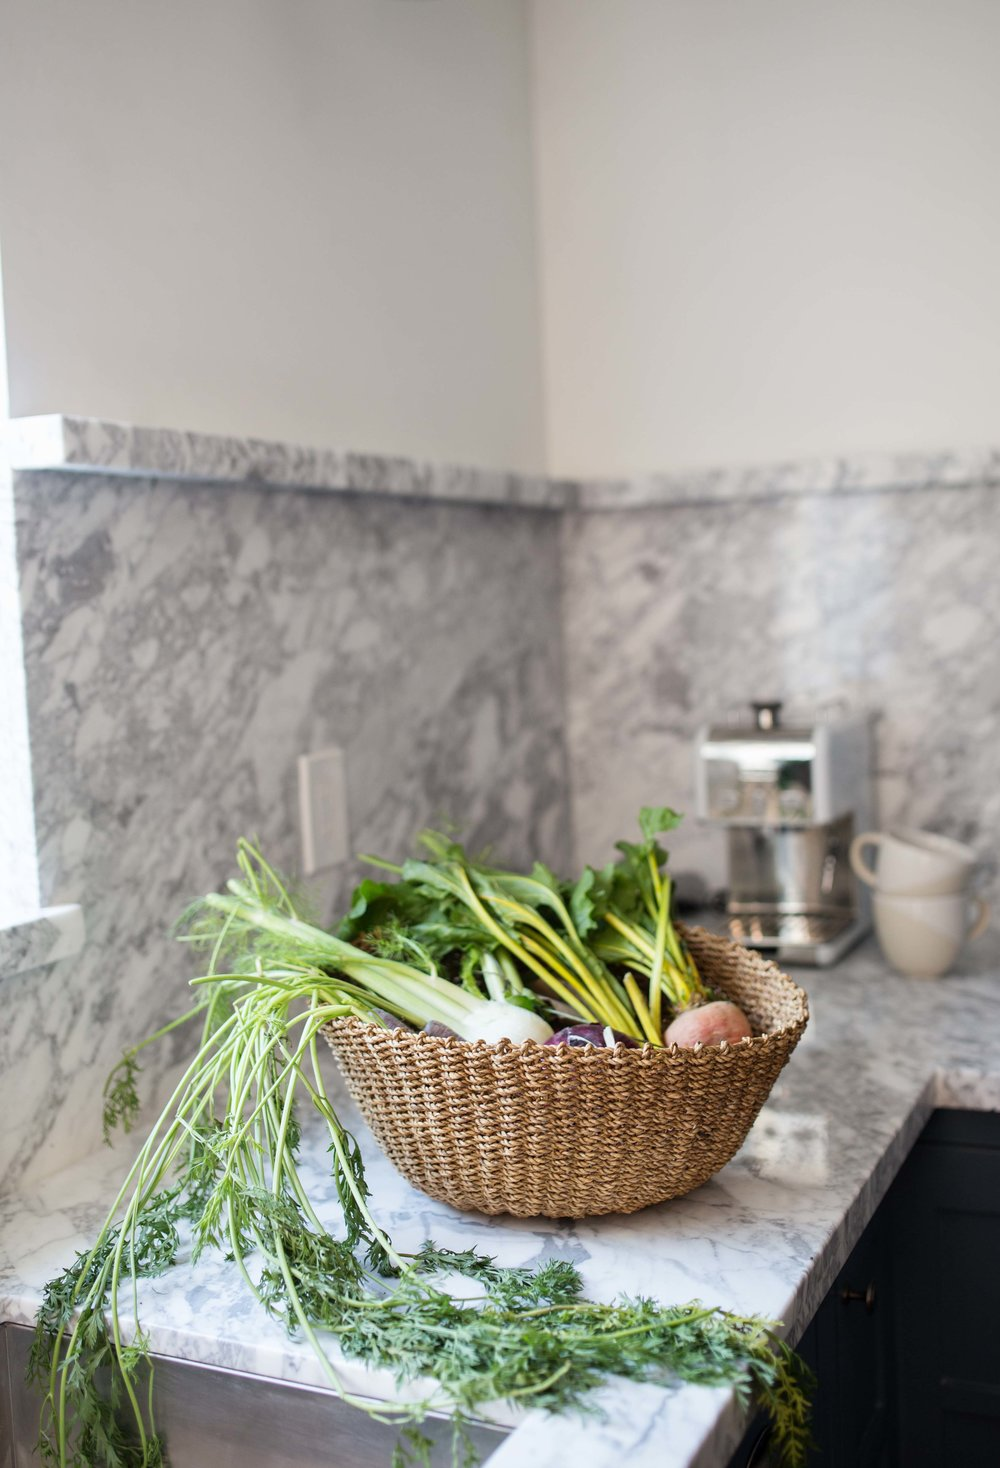 Clarendon Kitchen Carrara Arrabescato Marble with Farm Styling